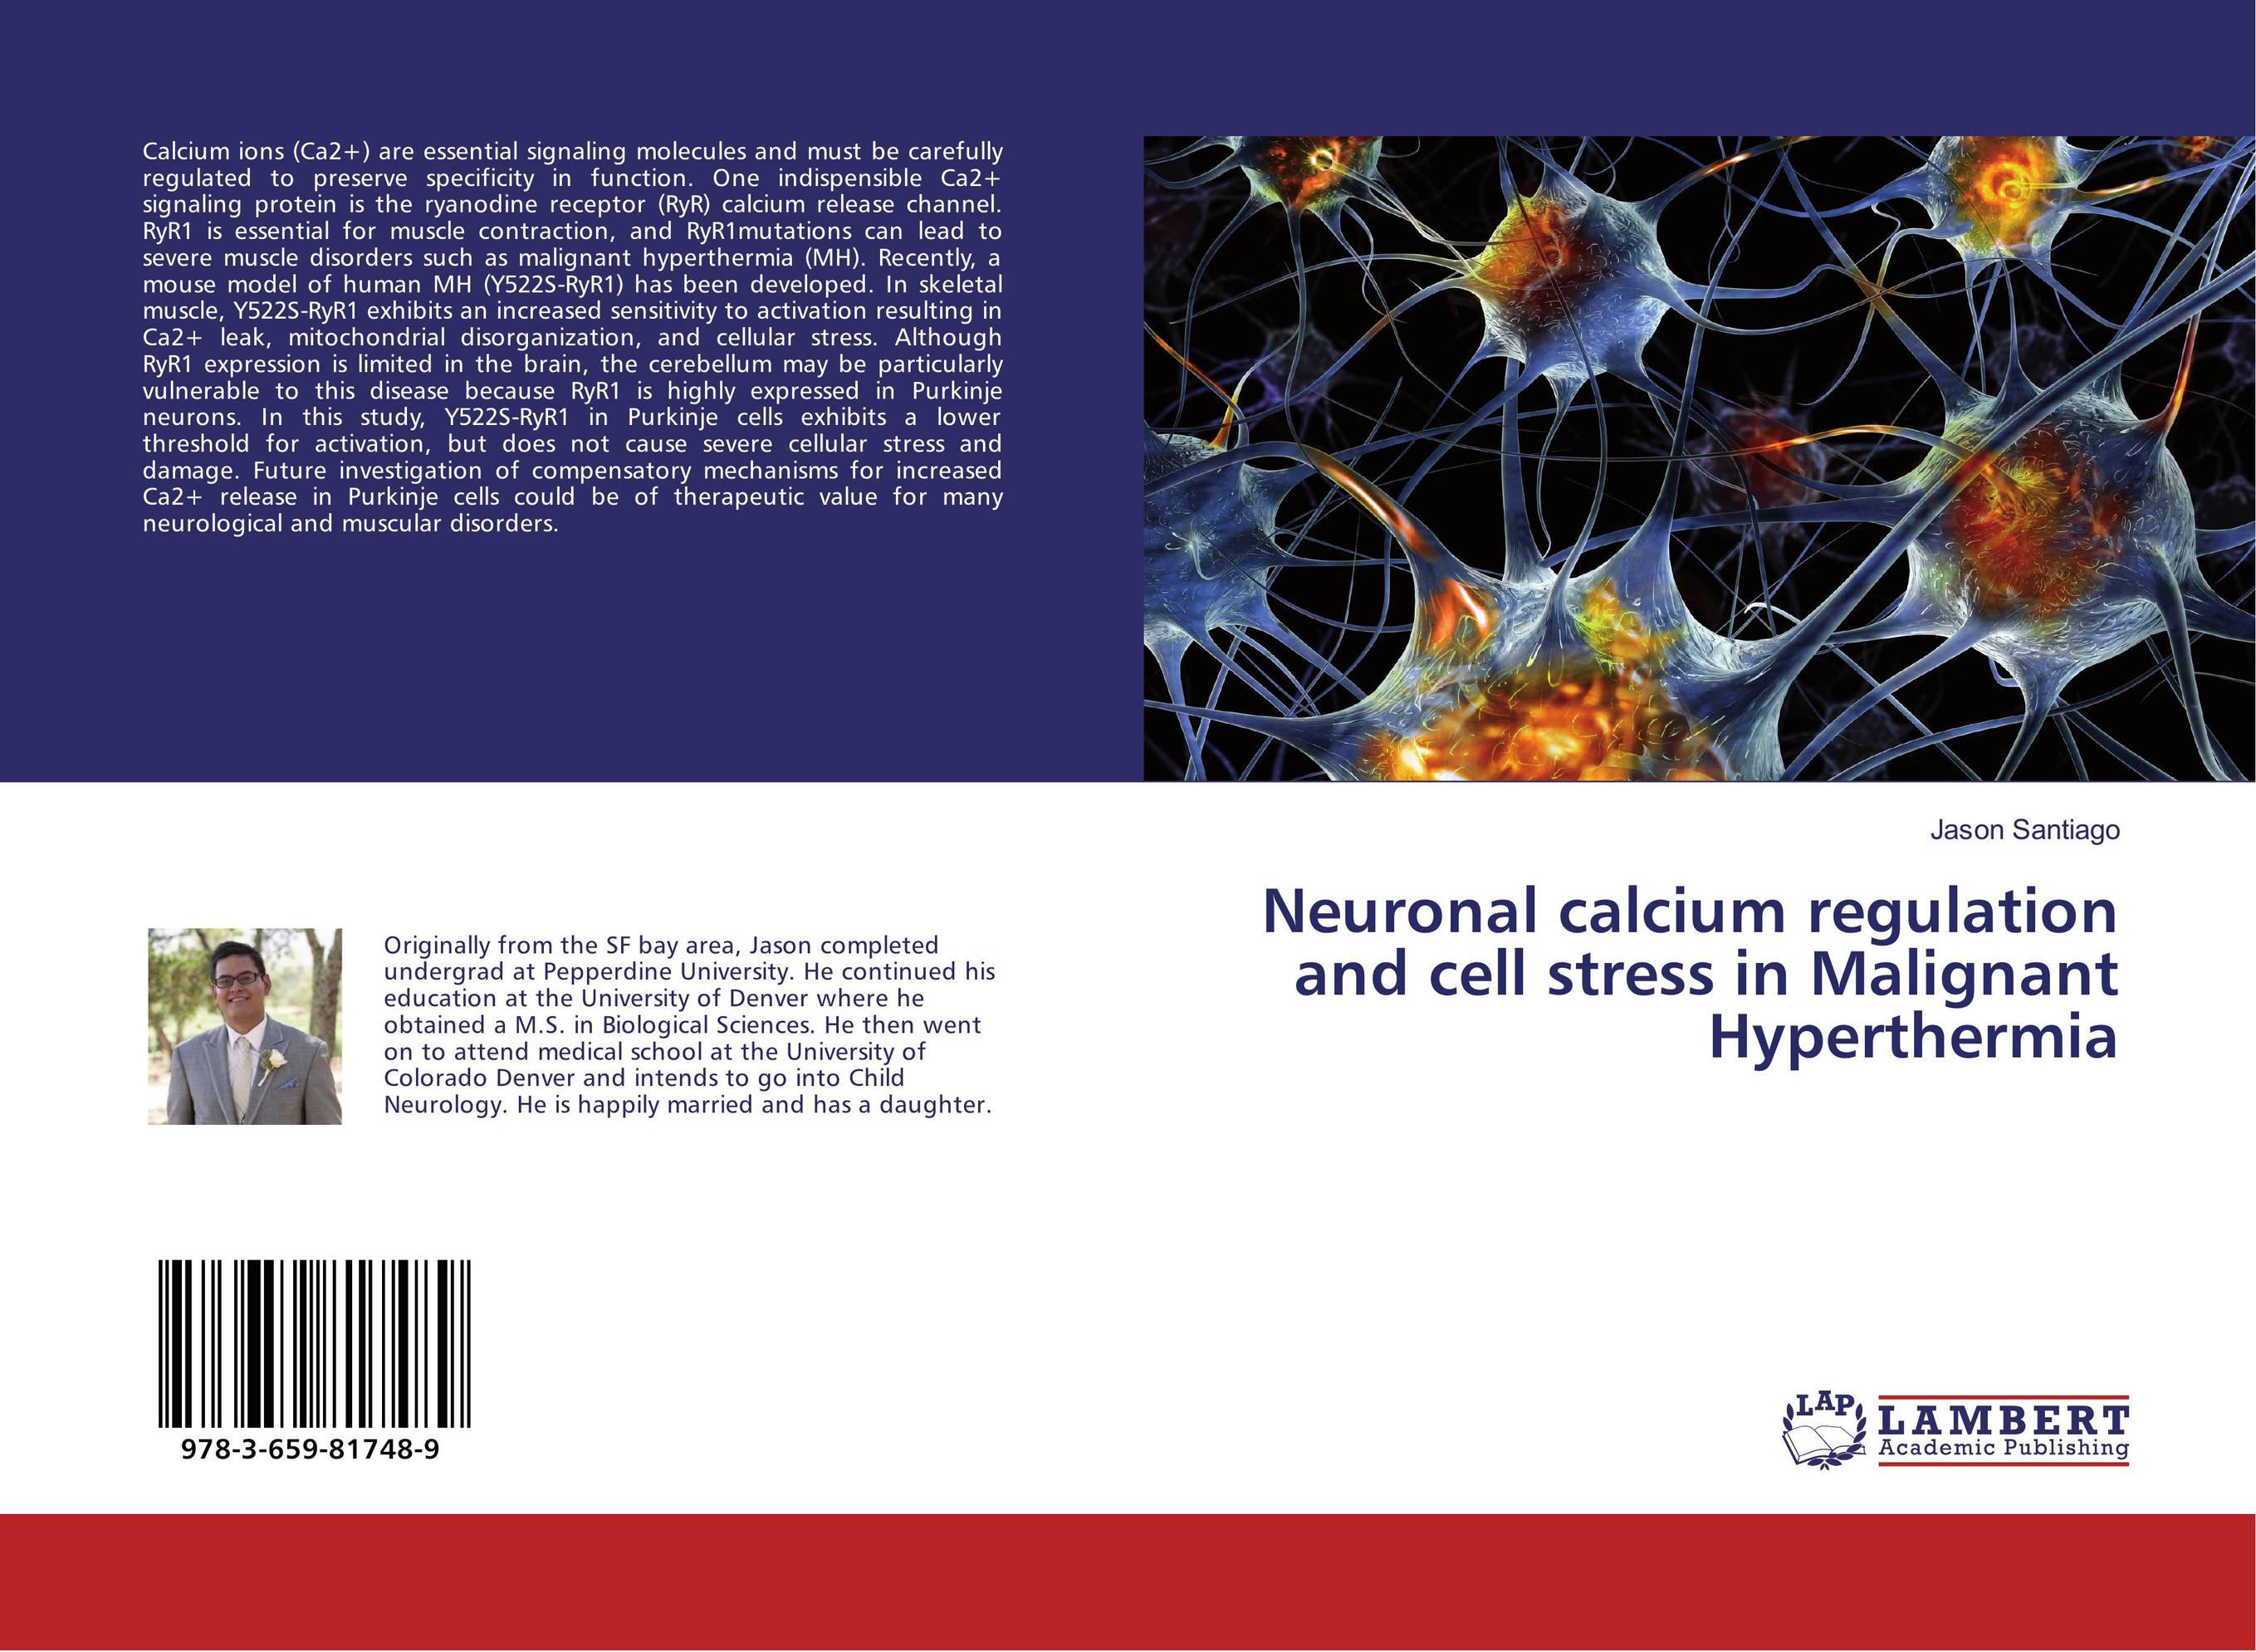 Neuronal calcium regulation and cell stress in Malignant Hyperthermia psychiatric disorders in postpartum period